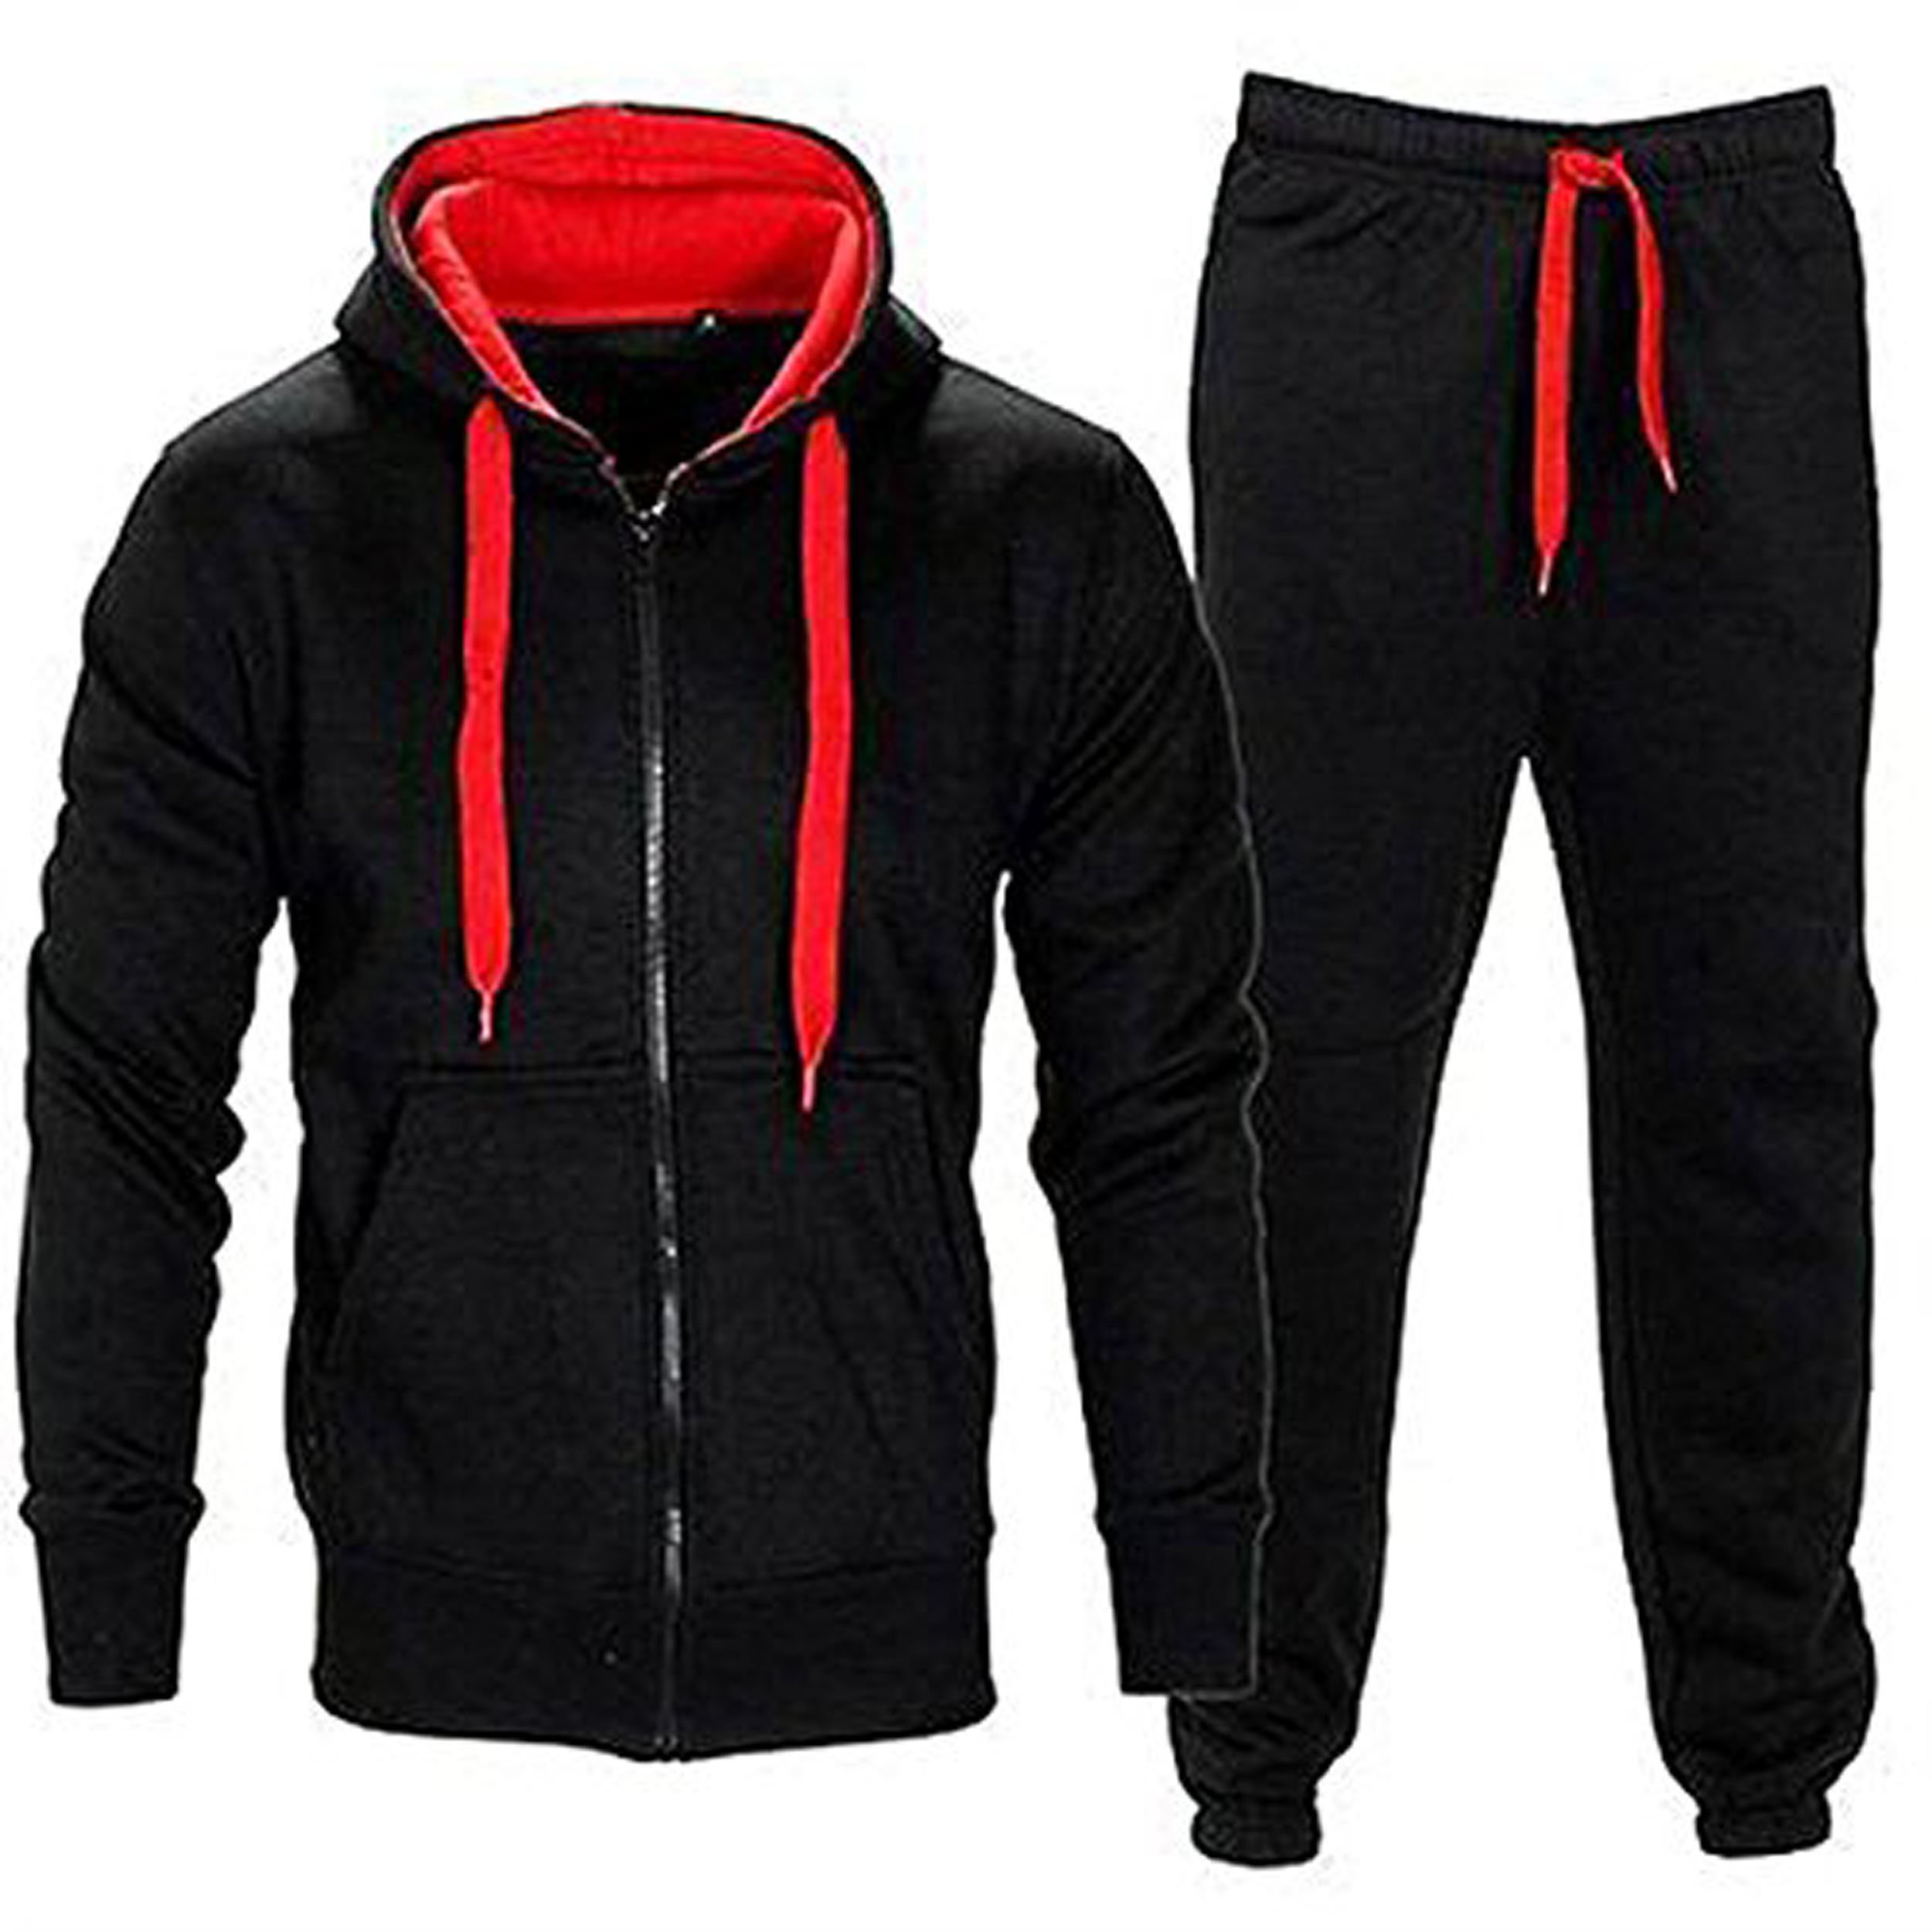 Juicy Trendz Mens Athletic Long selves Fleece Full Zip Gym Tracksuit Jogging Set Active Wear Black/Red L by Juicy Trendz